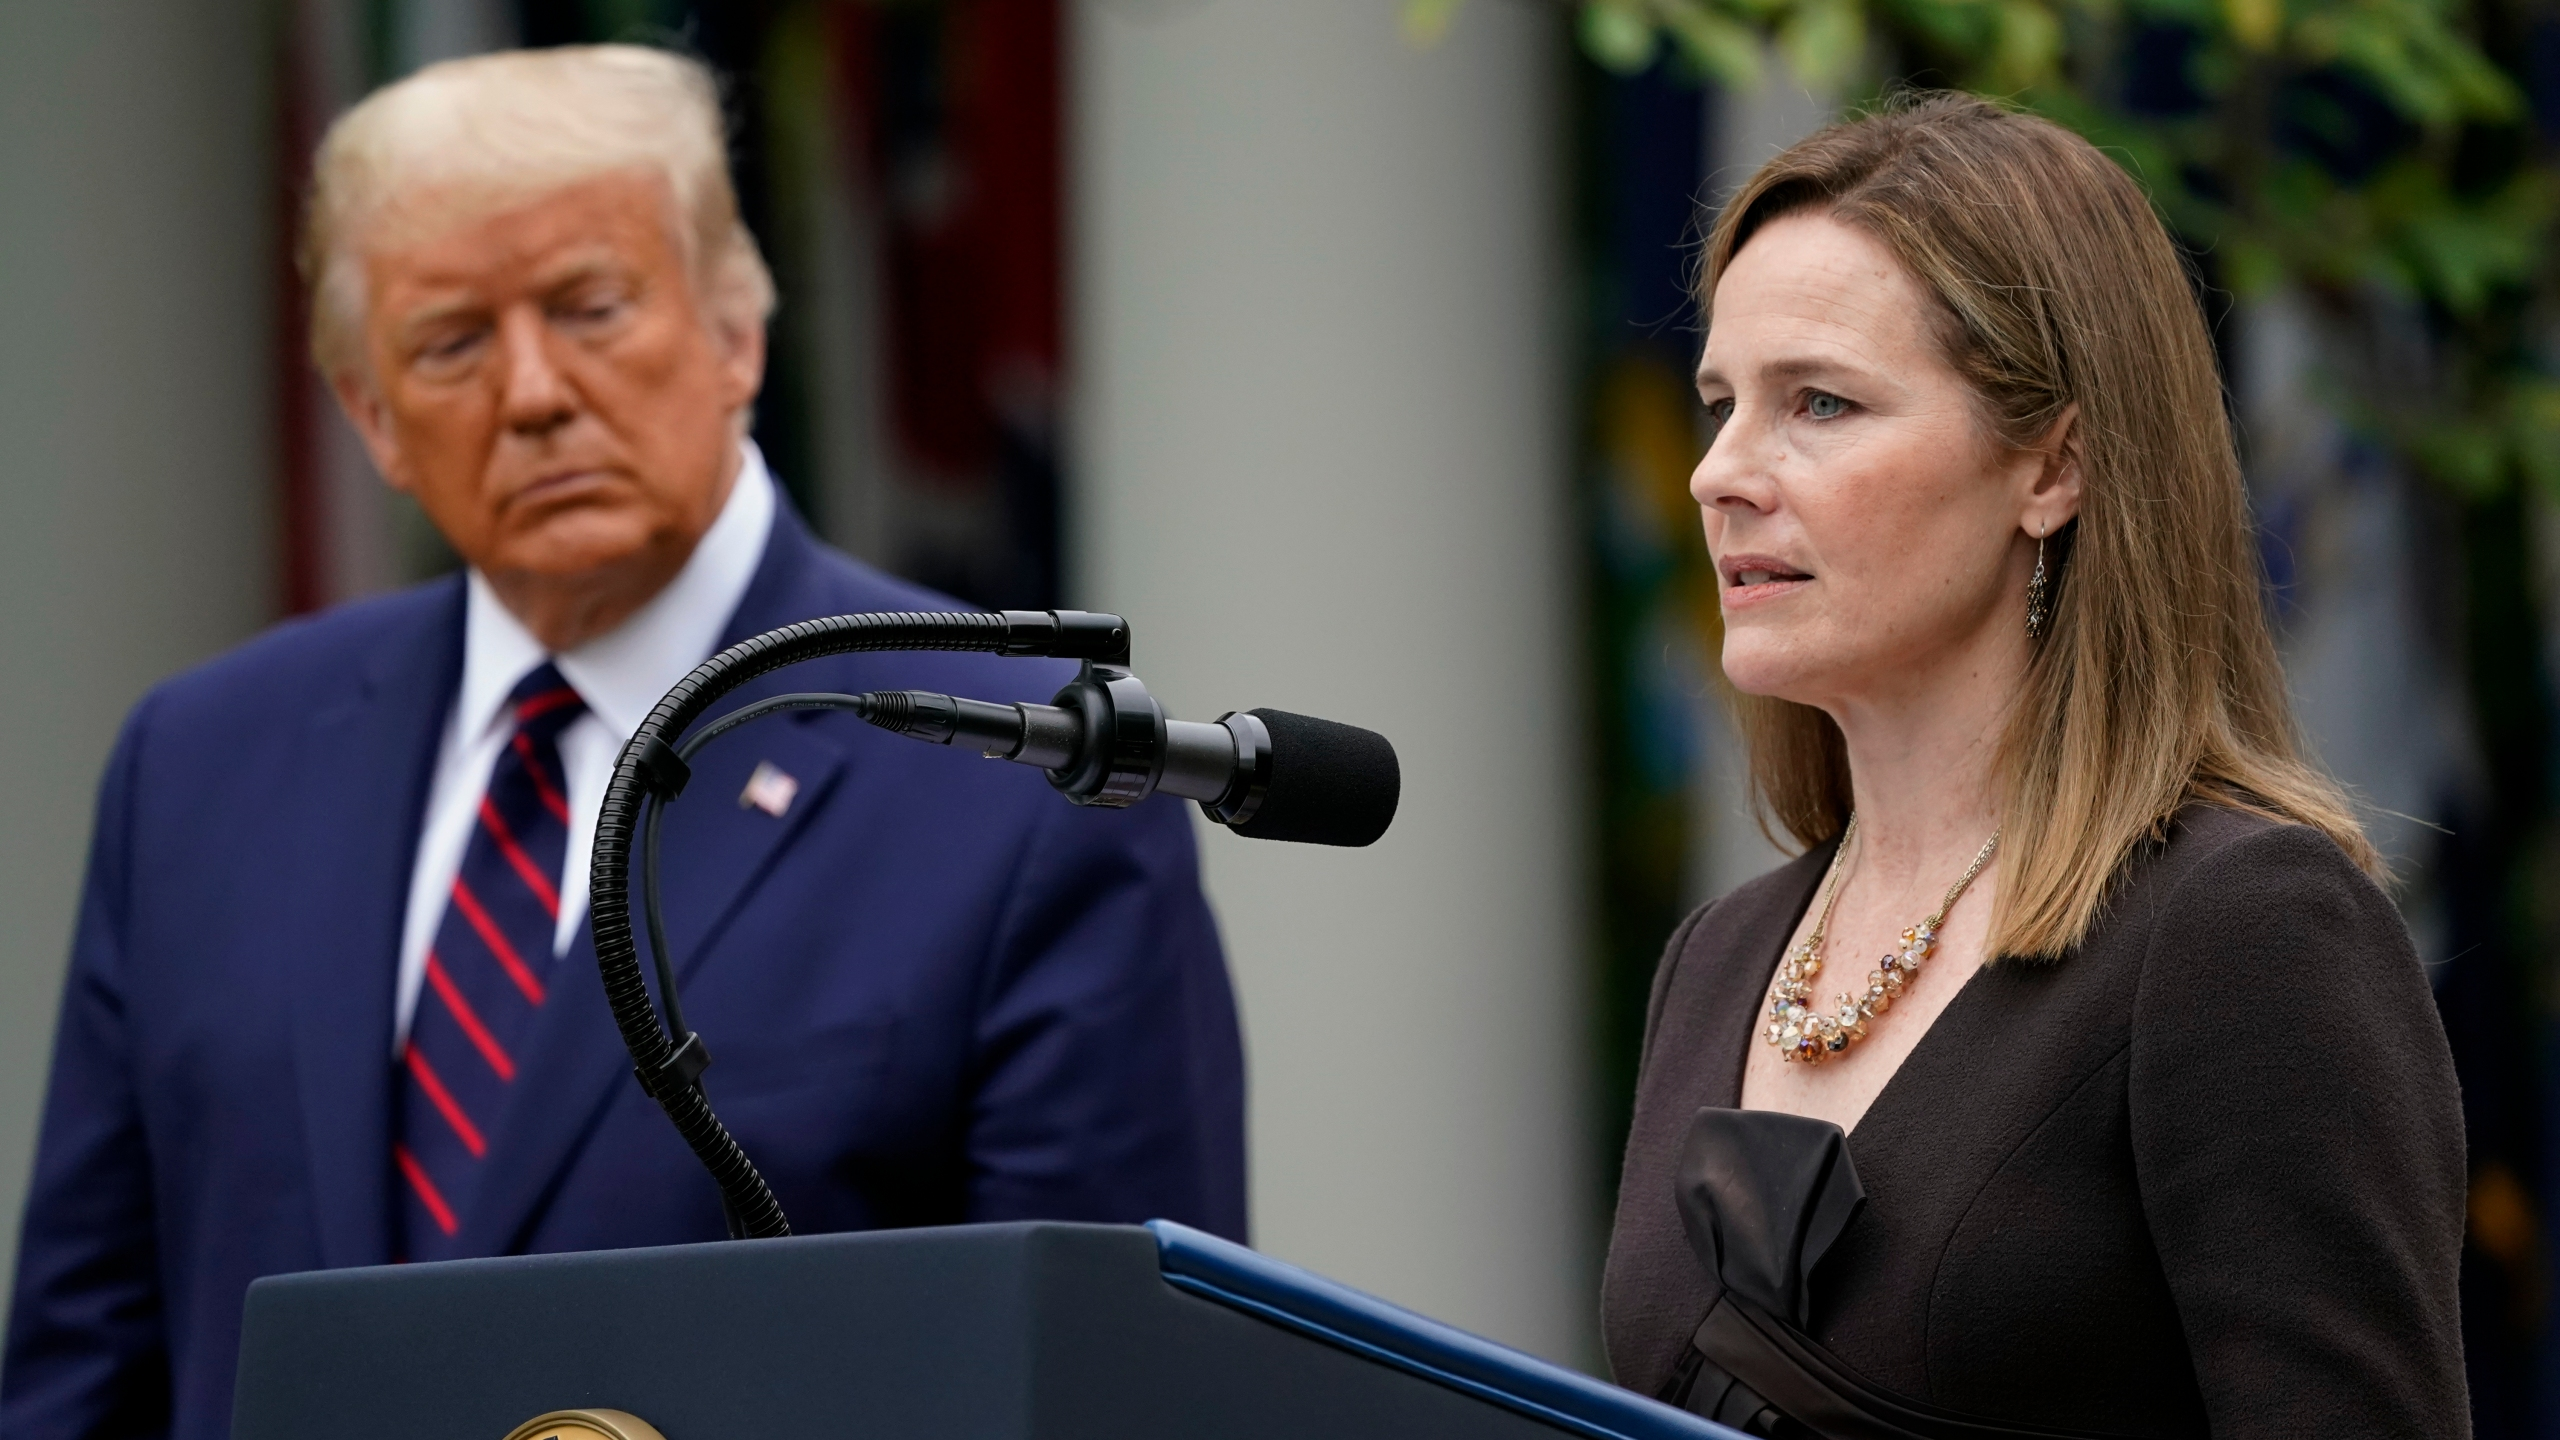 Judge Amy Coney Barrett speaks after President Donald Trump announced her as his nominee to the Supreme Court in the Rose Garden on Sept. 26, 2020. (Alex Brandon/Associated Press)